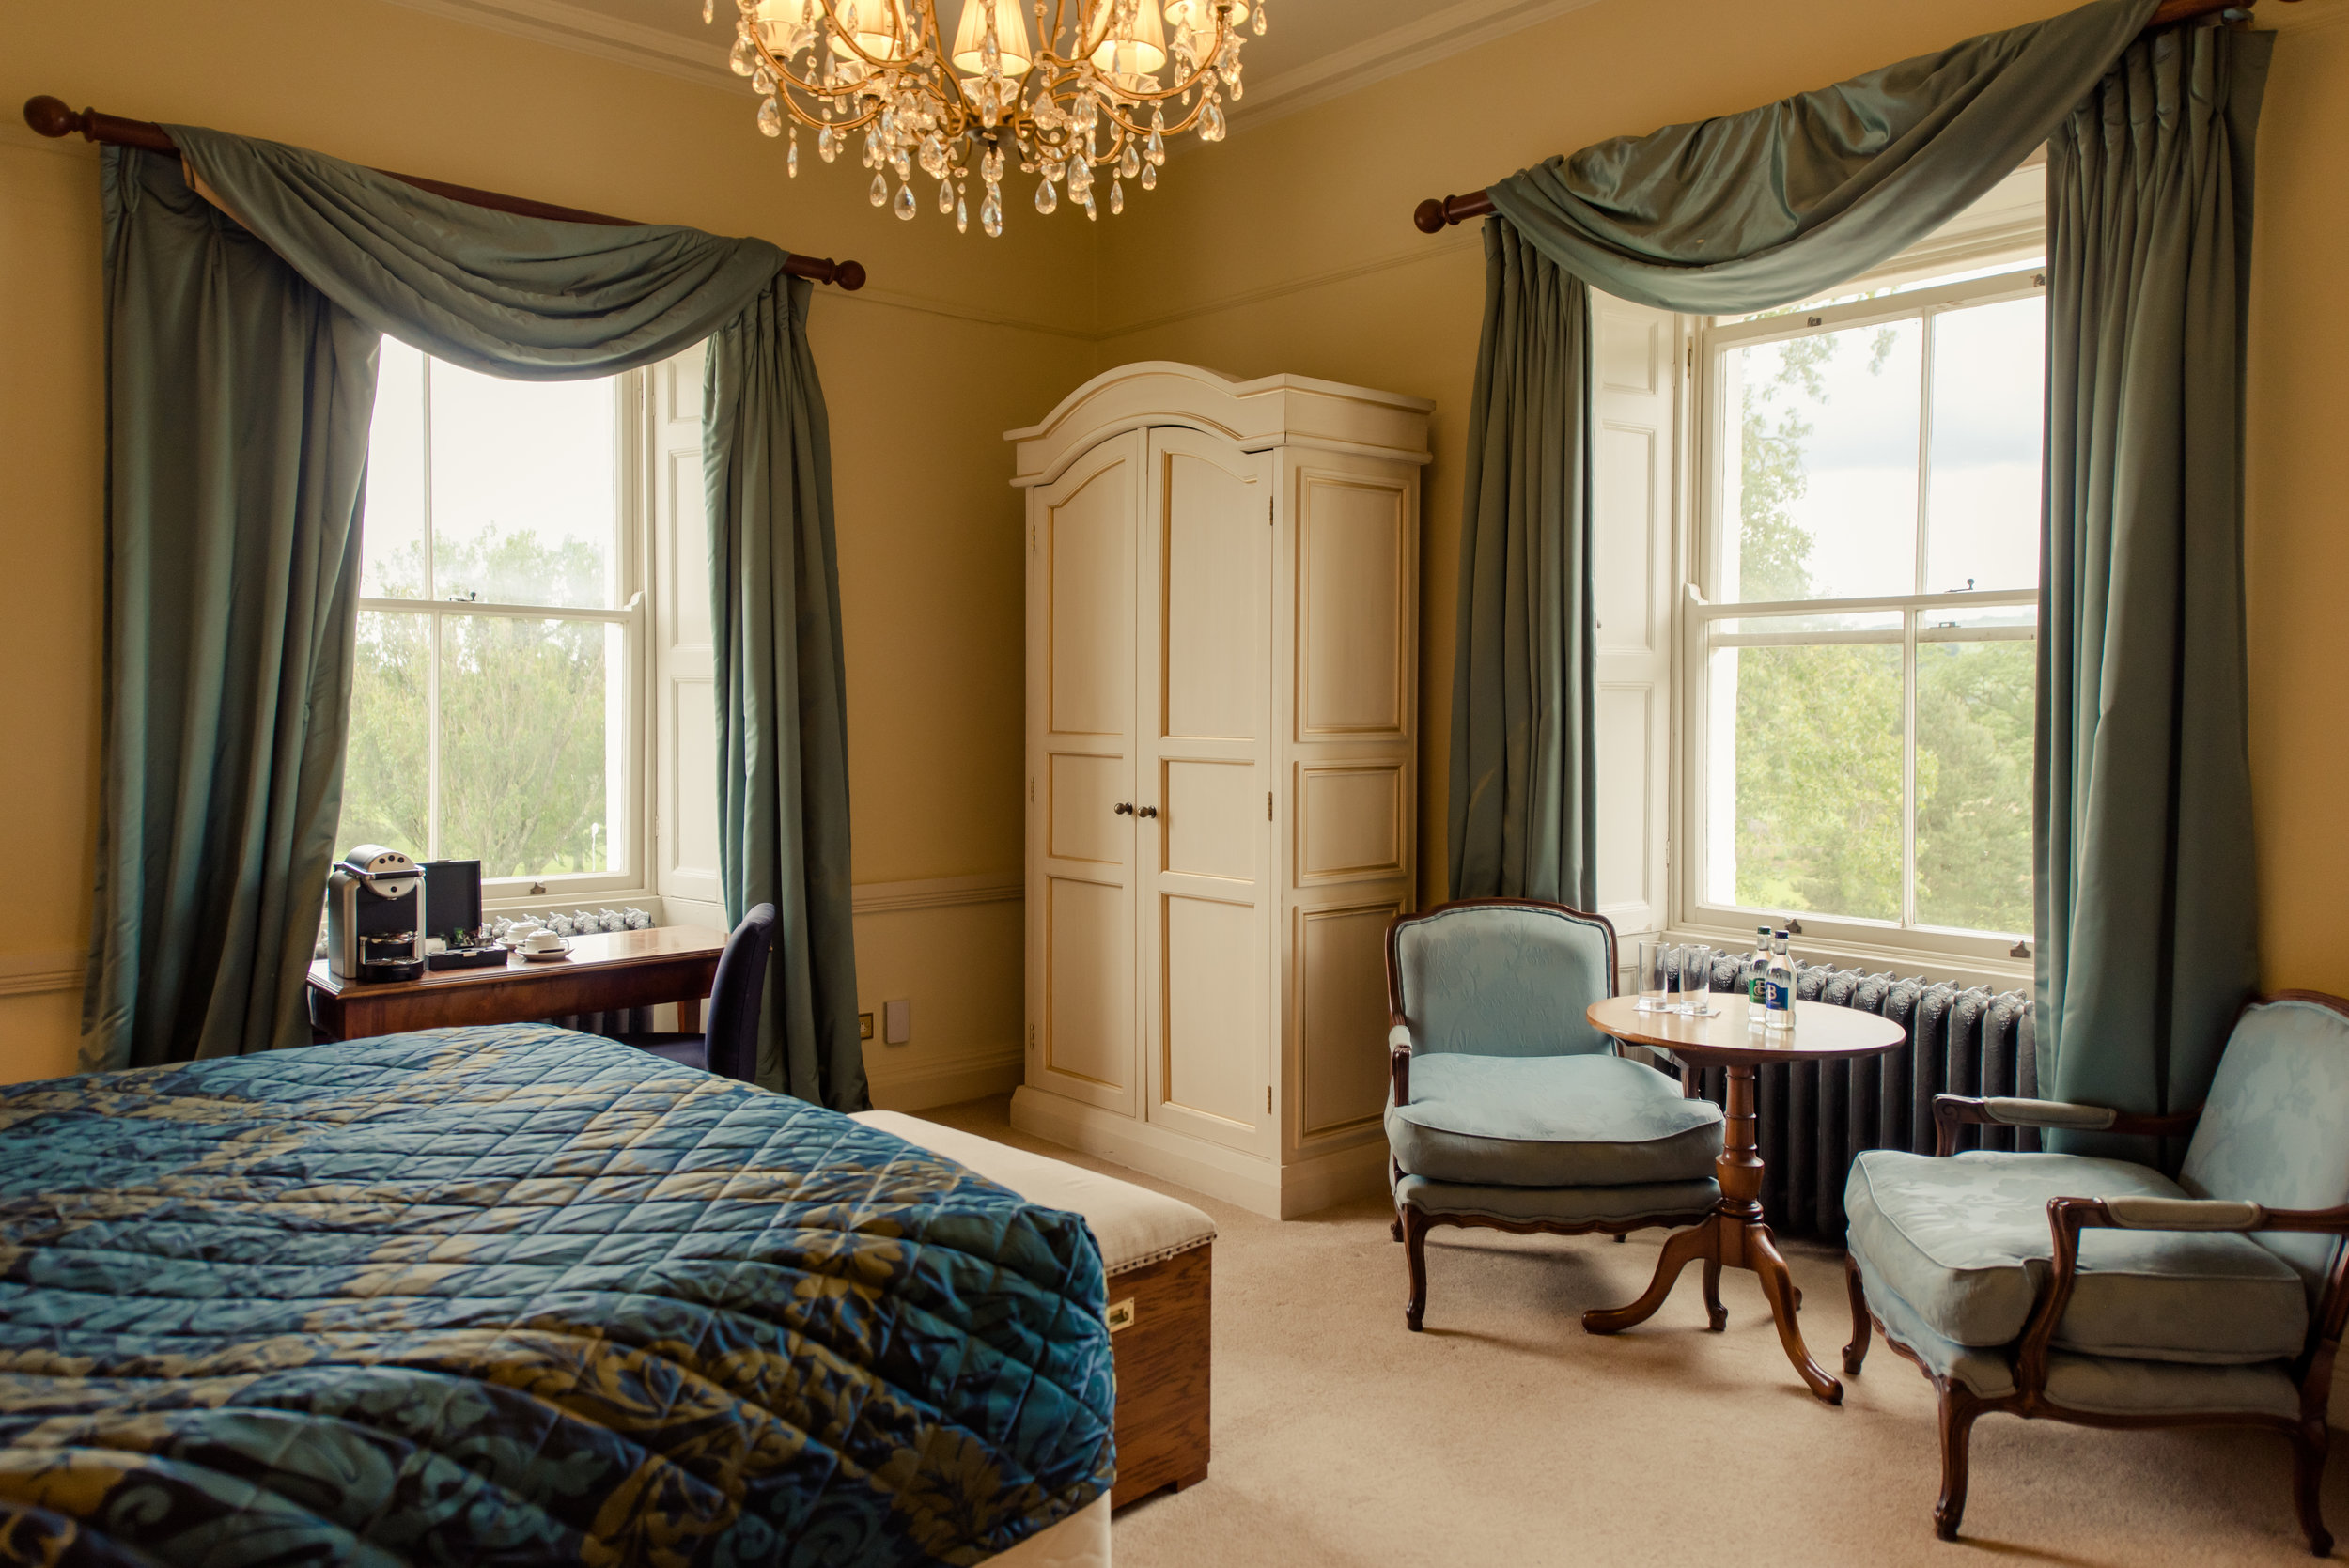 Tulfarris Hotel & Golf Resort Manor House bedroom with view out of two windows.jpg